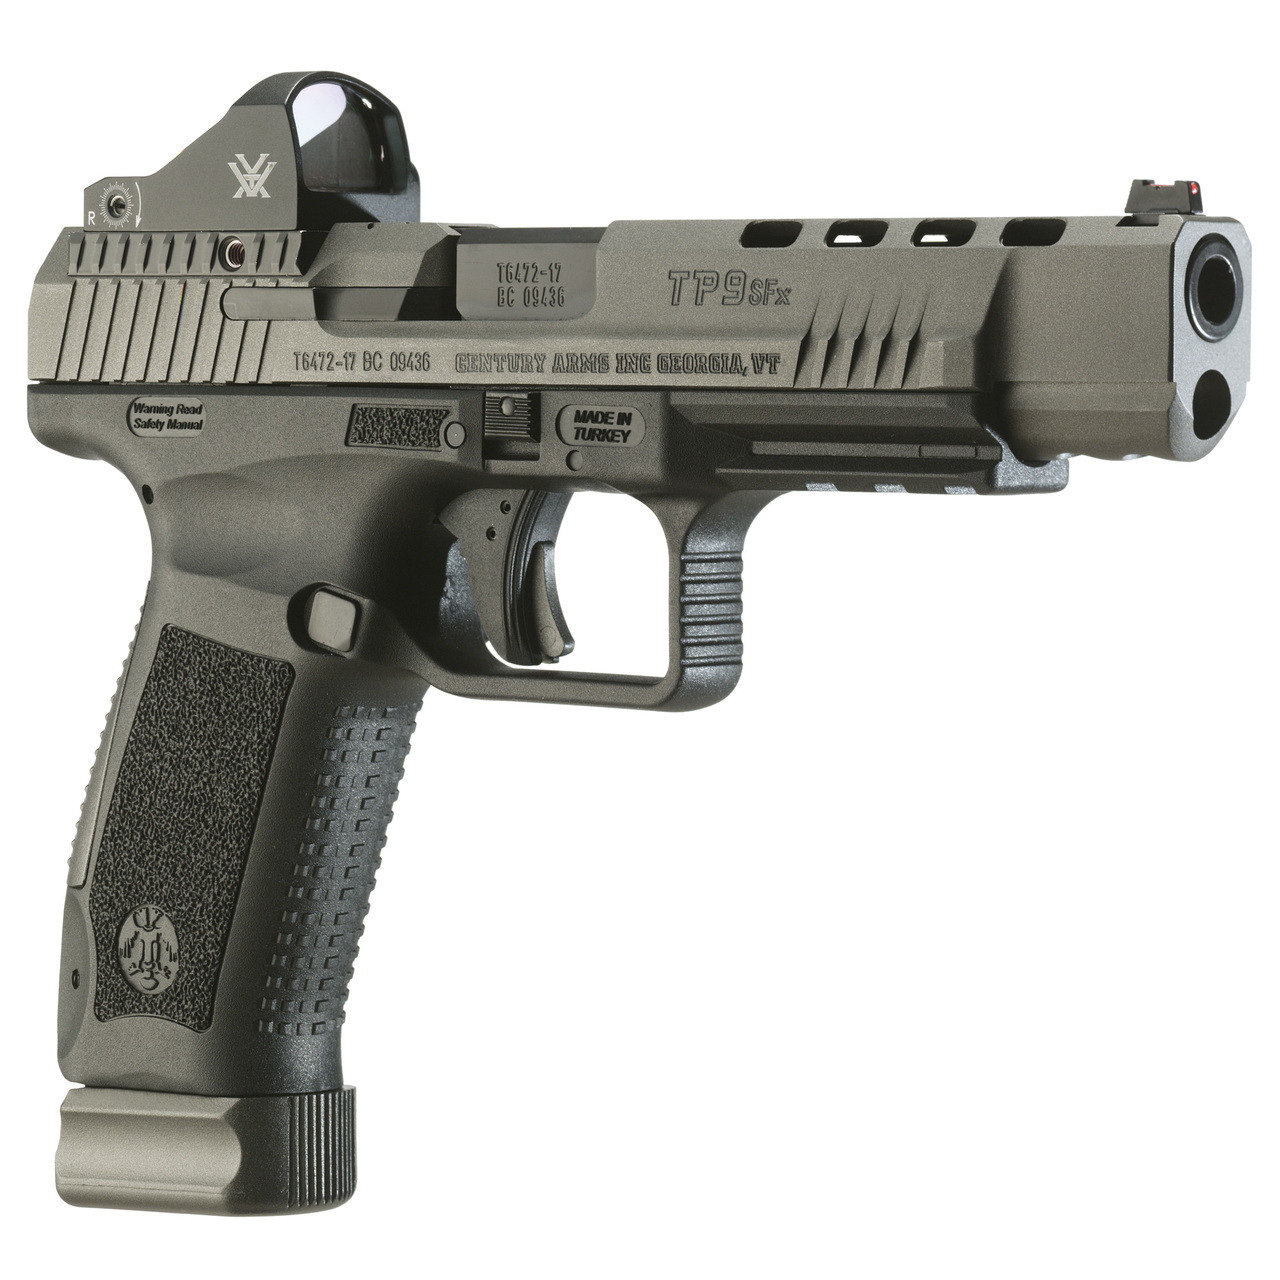 CANIK TP9SFx, Striker Fired, 9MM, 5 2